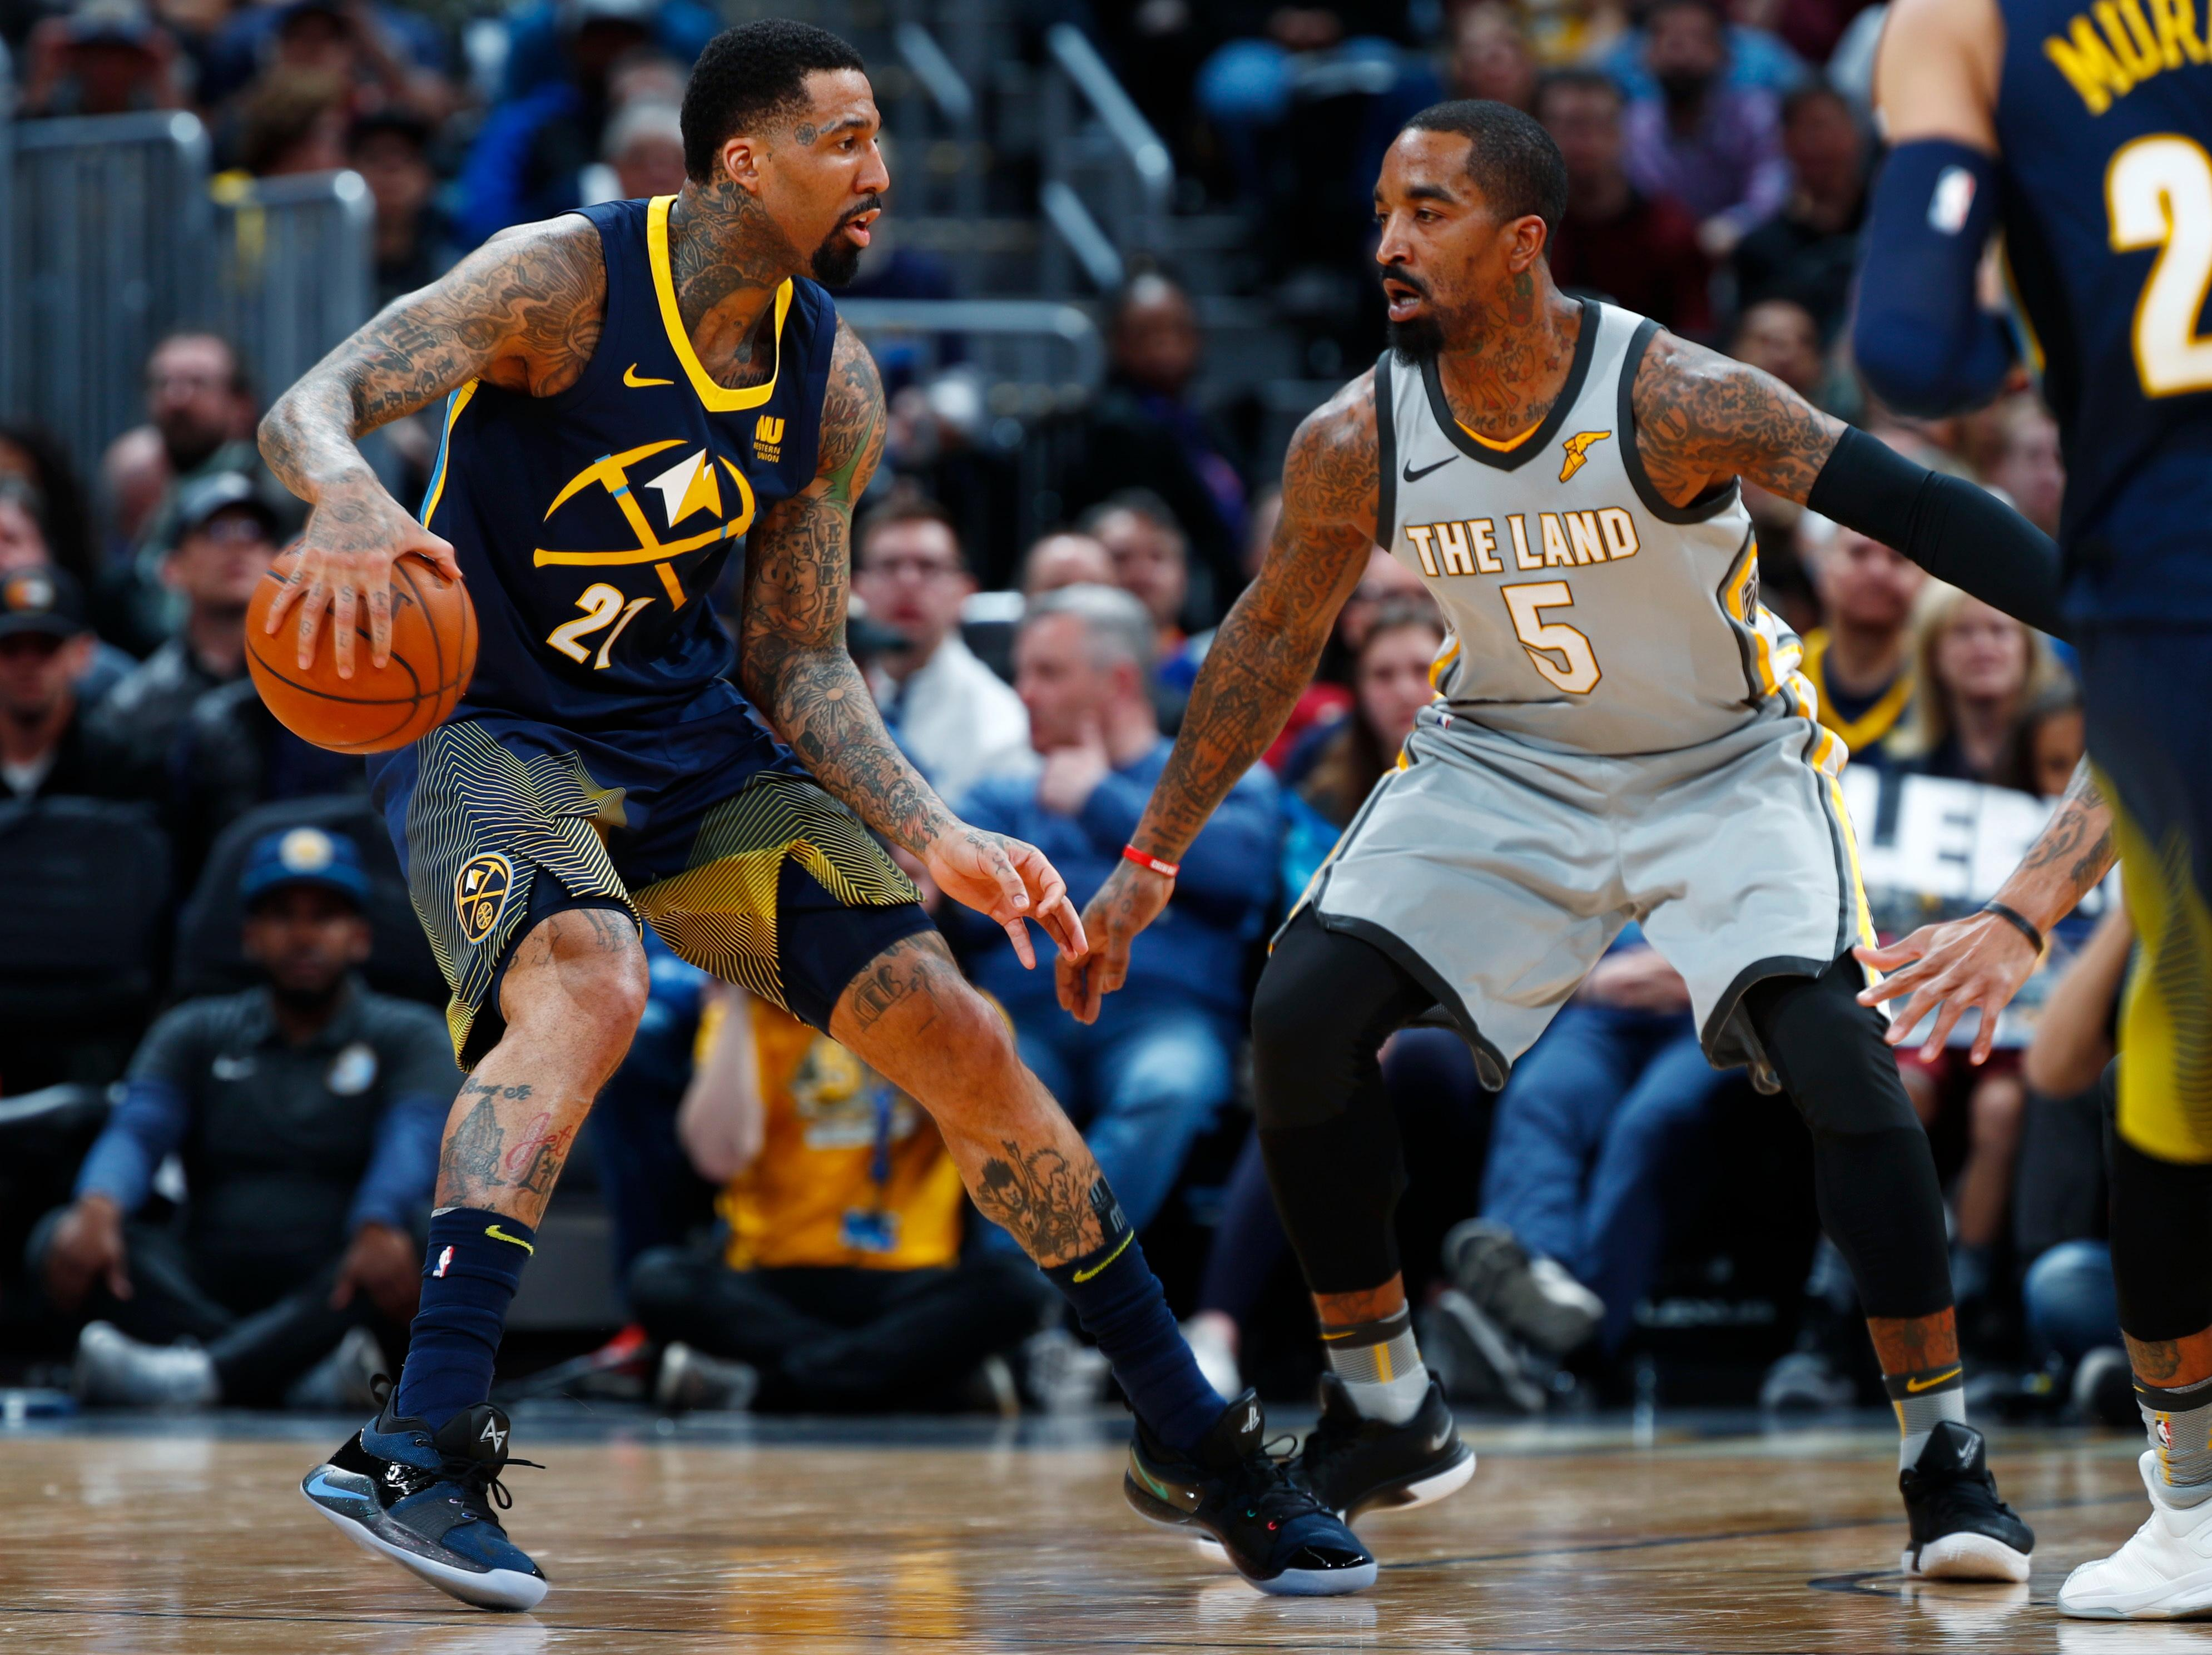 Denver Nuggets forward Wilson Chandler, left, looks to drive to the basket as Cleveland Cavaliers guard JR Smith defends during the first half of an NBA basketball game Wednesday, March 7, 2018, in Denver. (AP Photo/David Zalubowski)